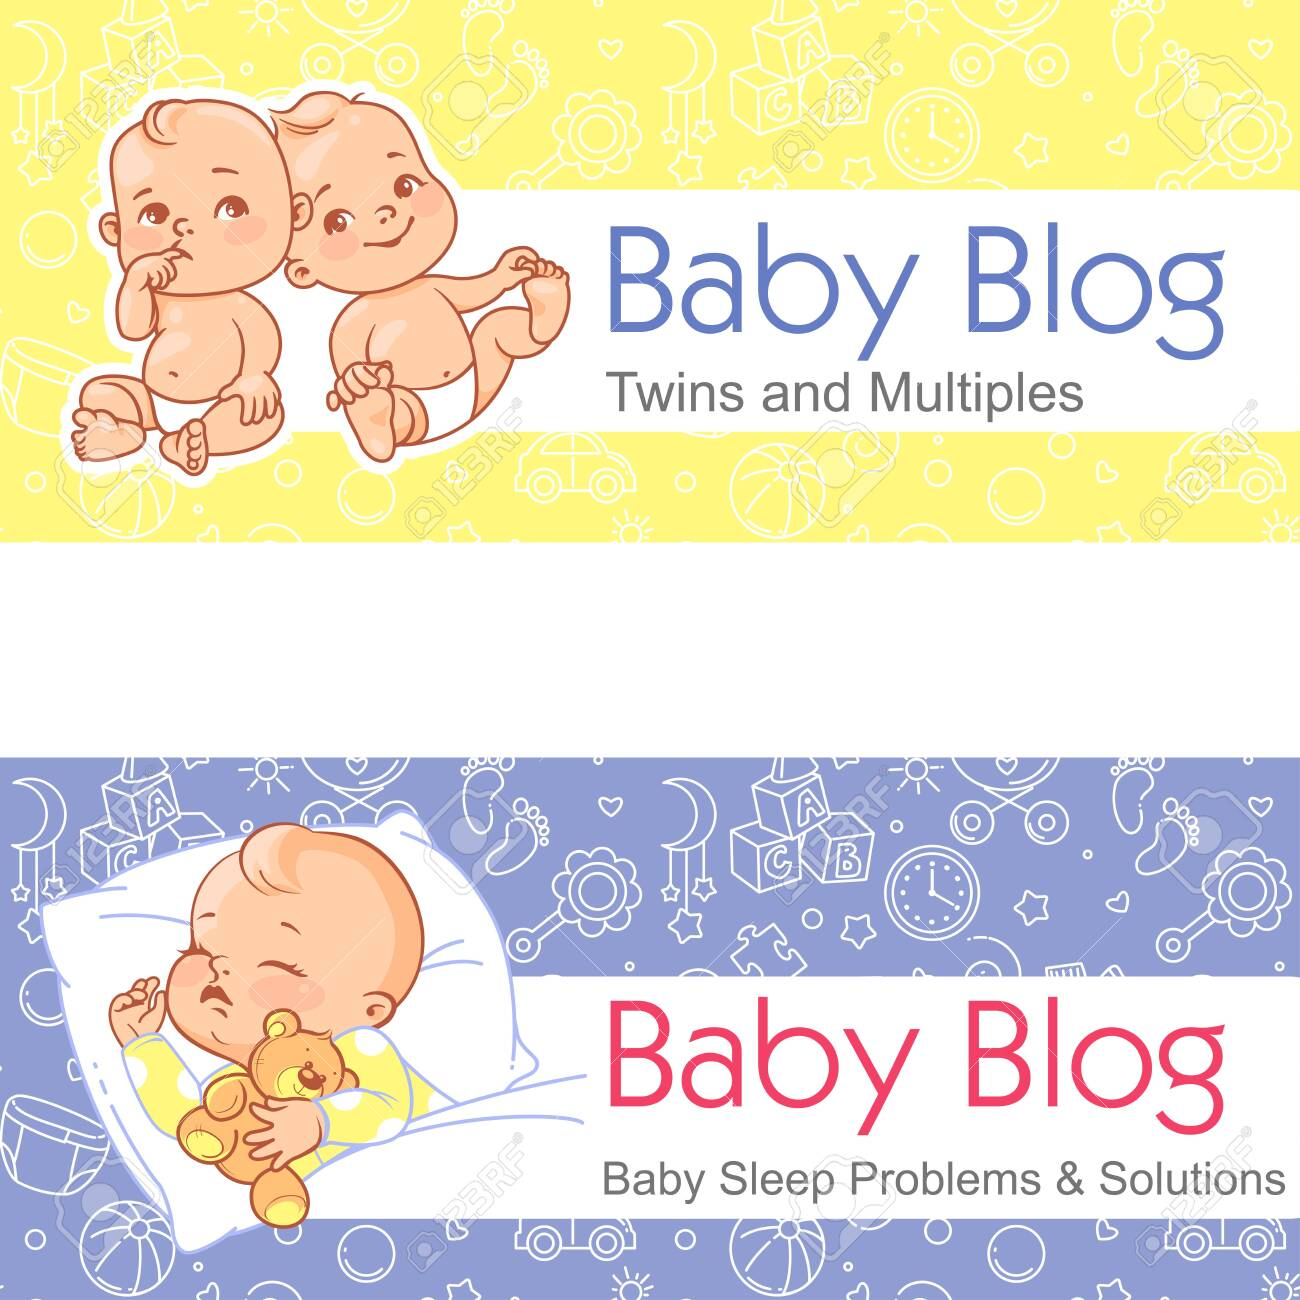 Baby Sleeping Twin Babies Design Template Banner With Text Royalty Free Cliparts Vectors And Stock Illustration Image 124291197